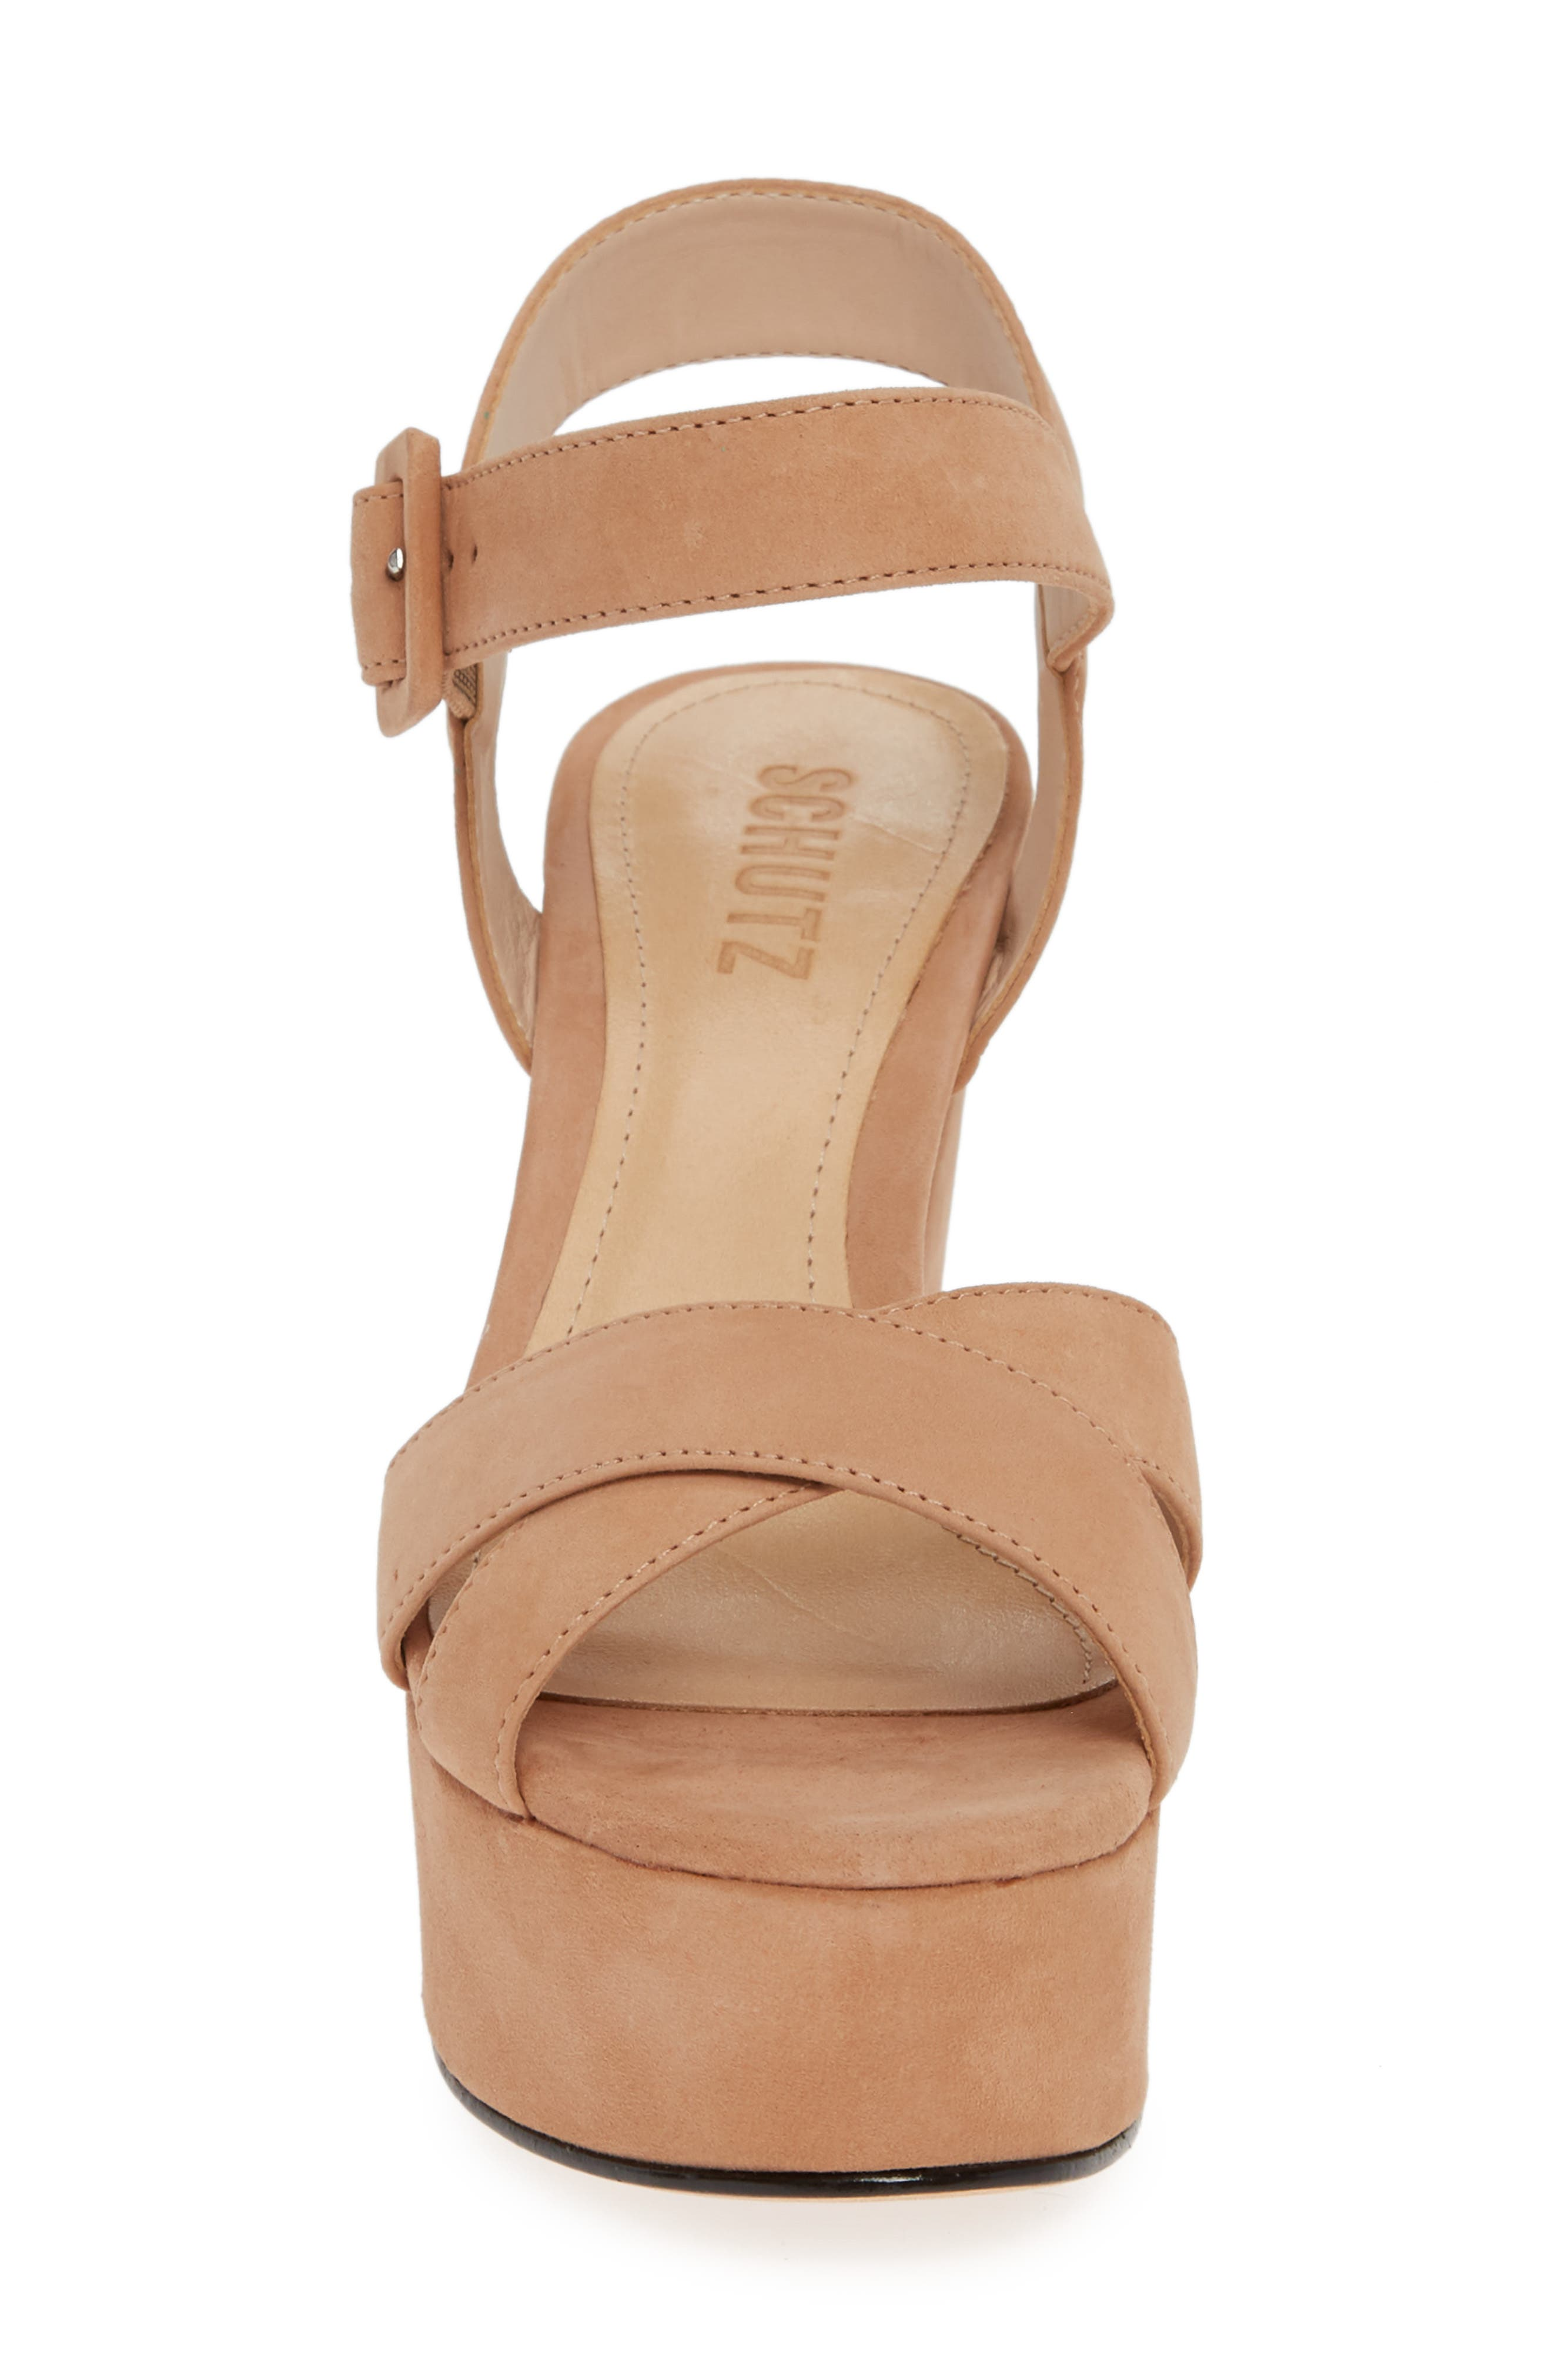 Tulia Sandal,                             Alternate thumbnail 4, color,                             HONEY BEIGE NUBUCK